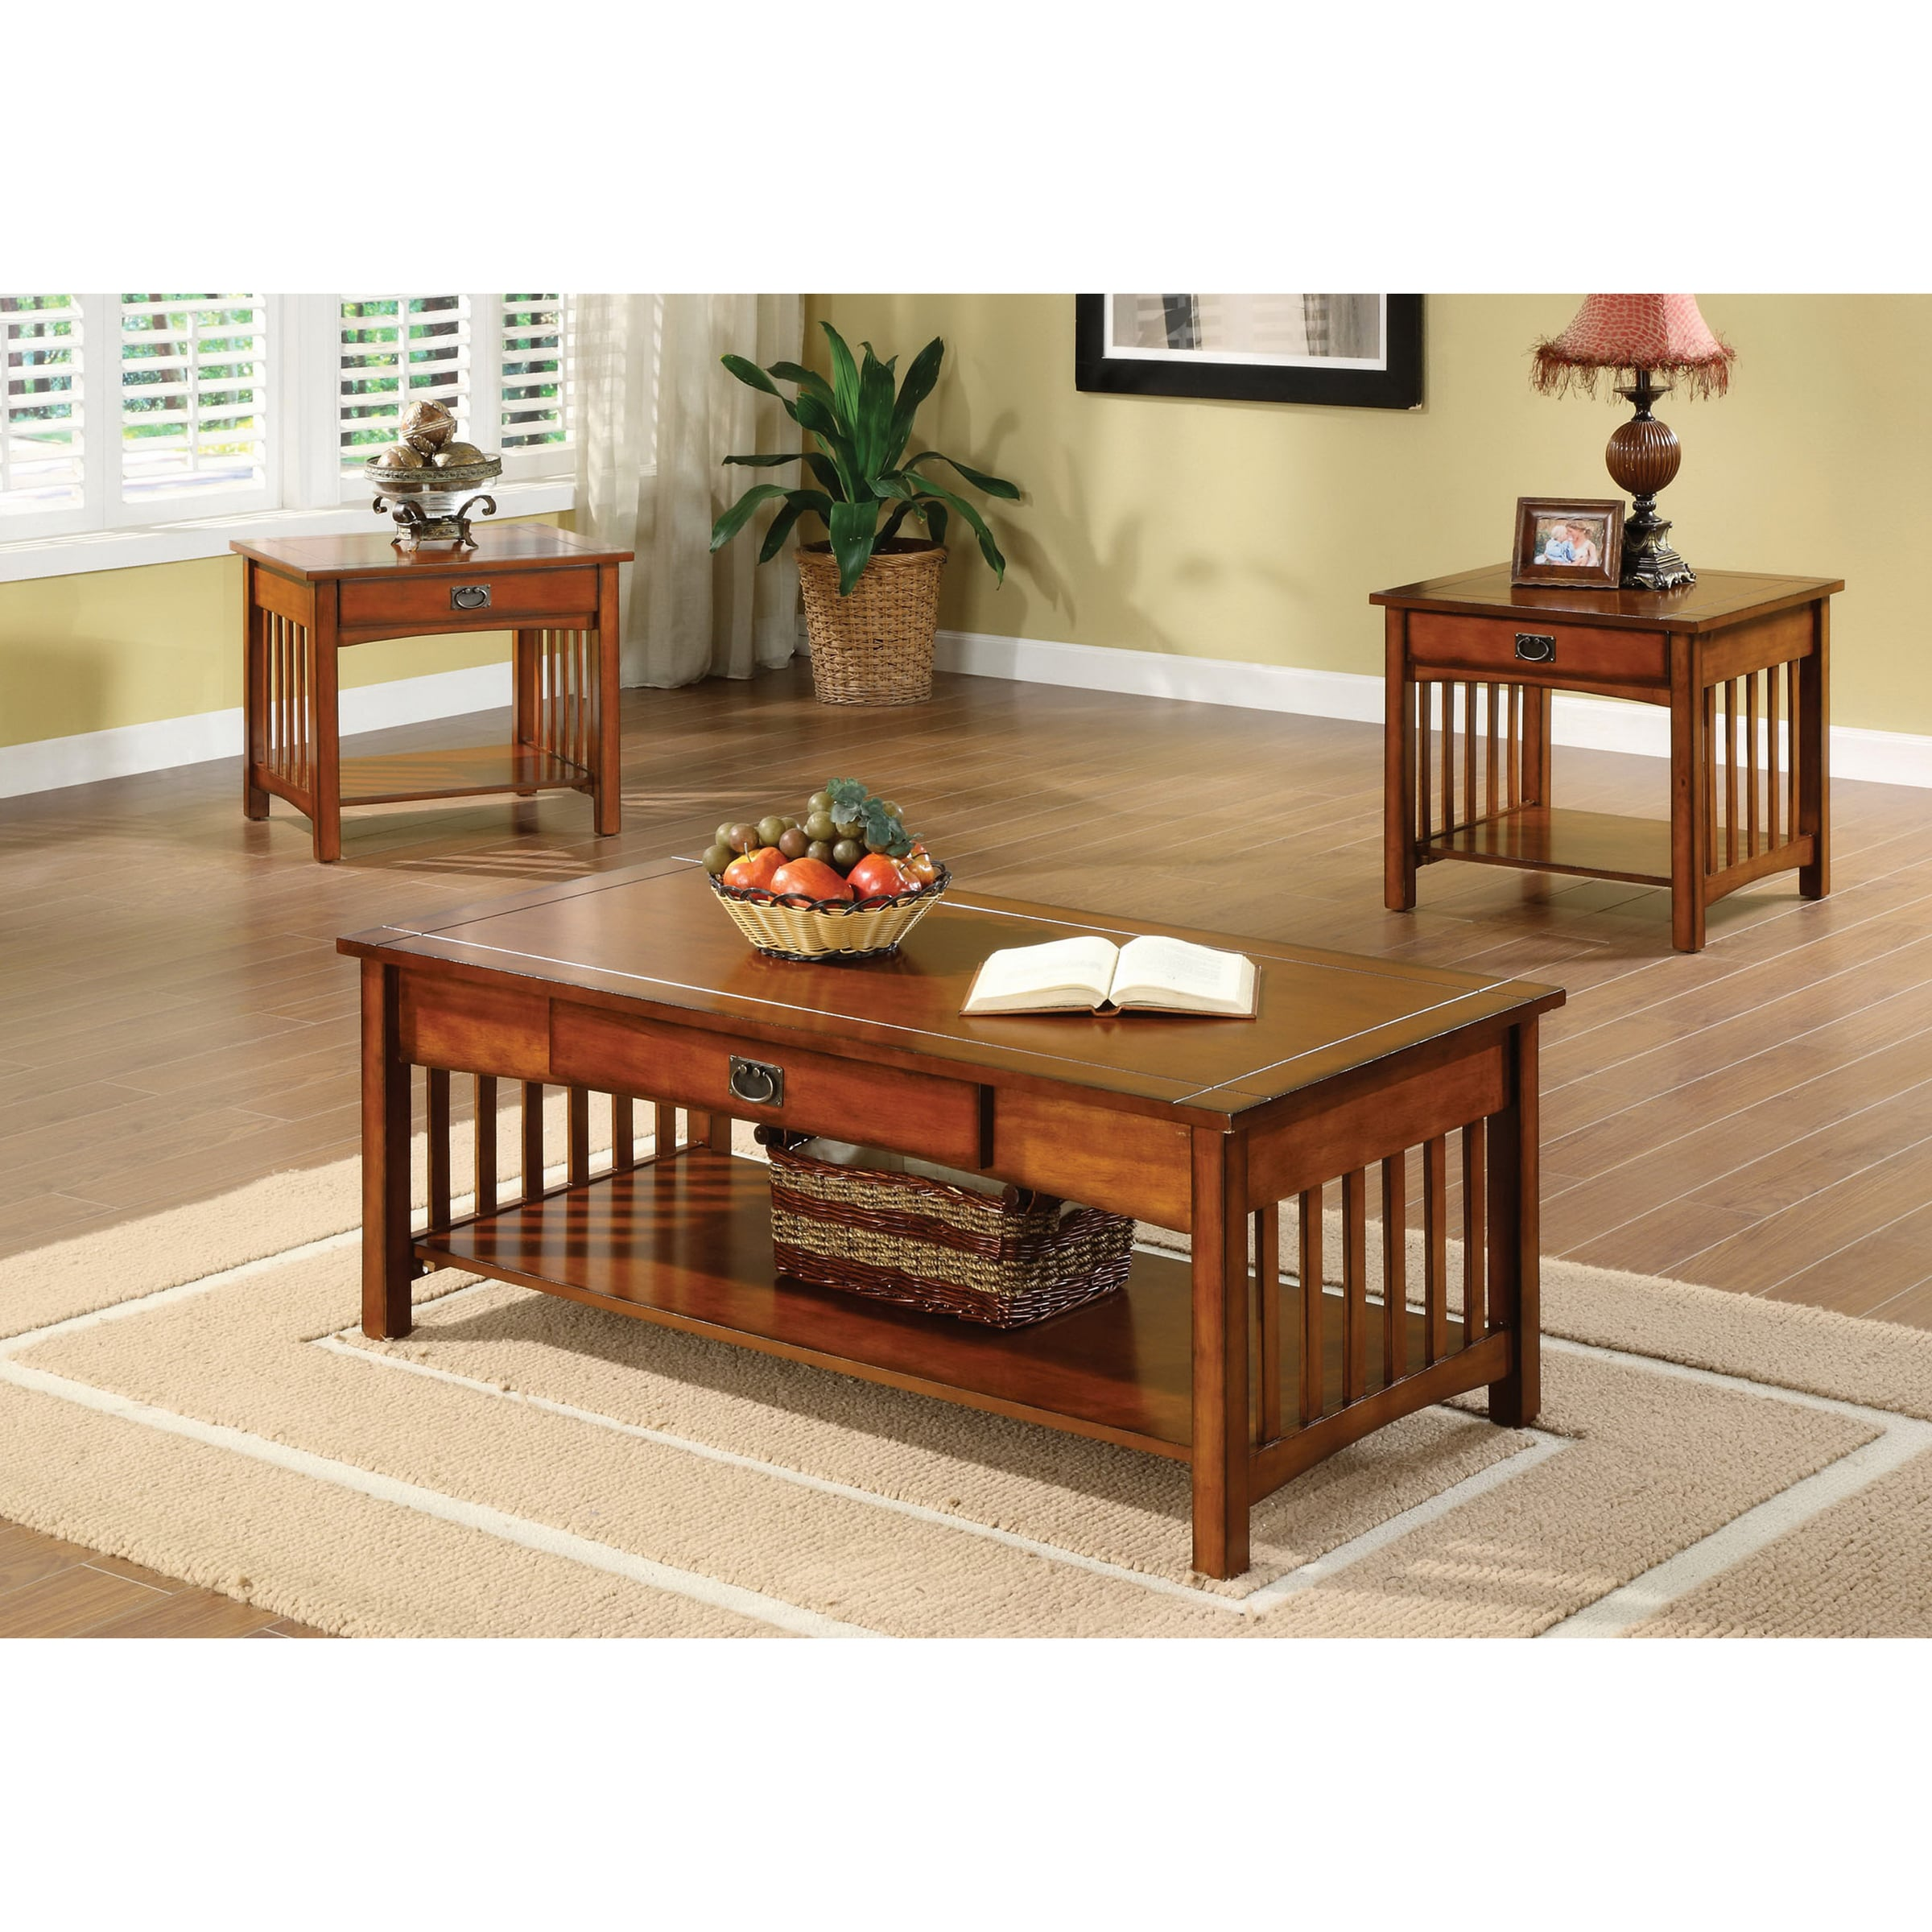 nash mission antique oak piece accent tables set foa furniture america style finish coffee end table and free shipping today best dining display powell chairs gray top target